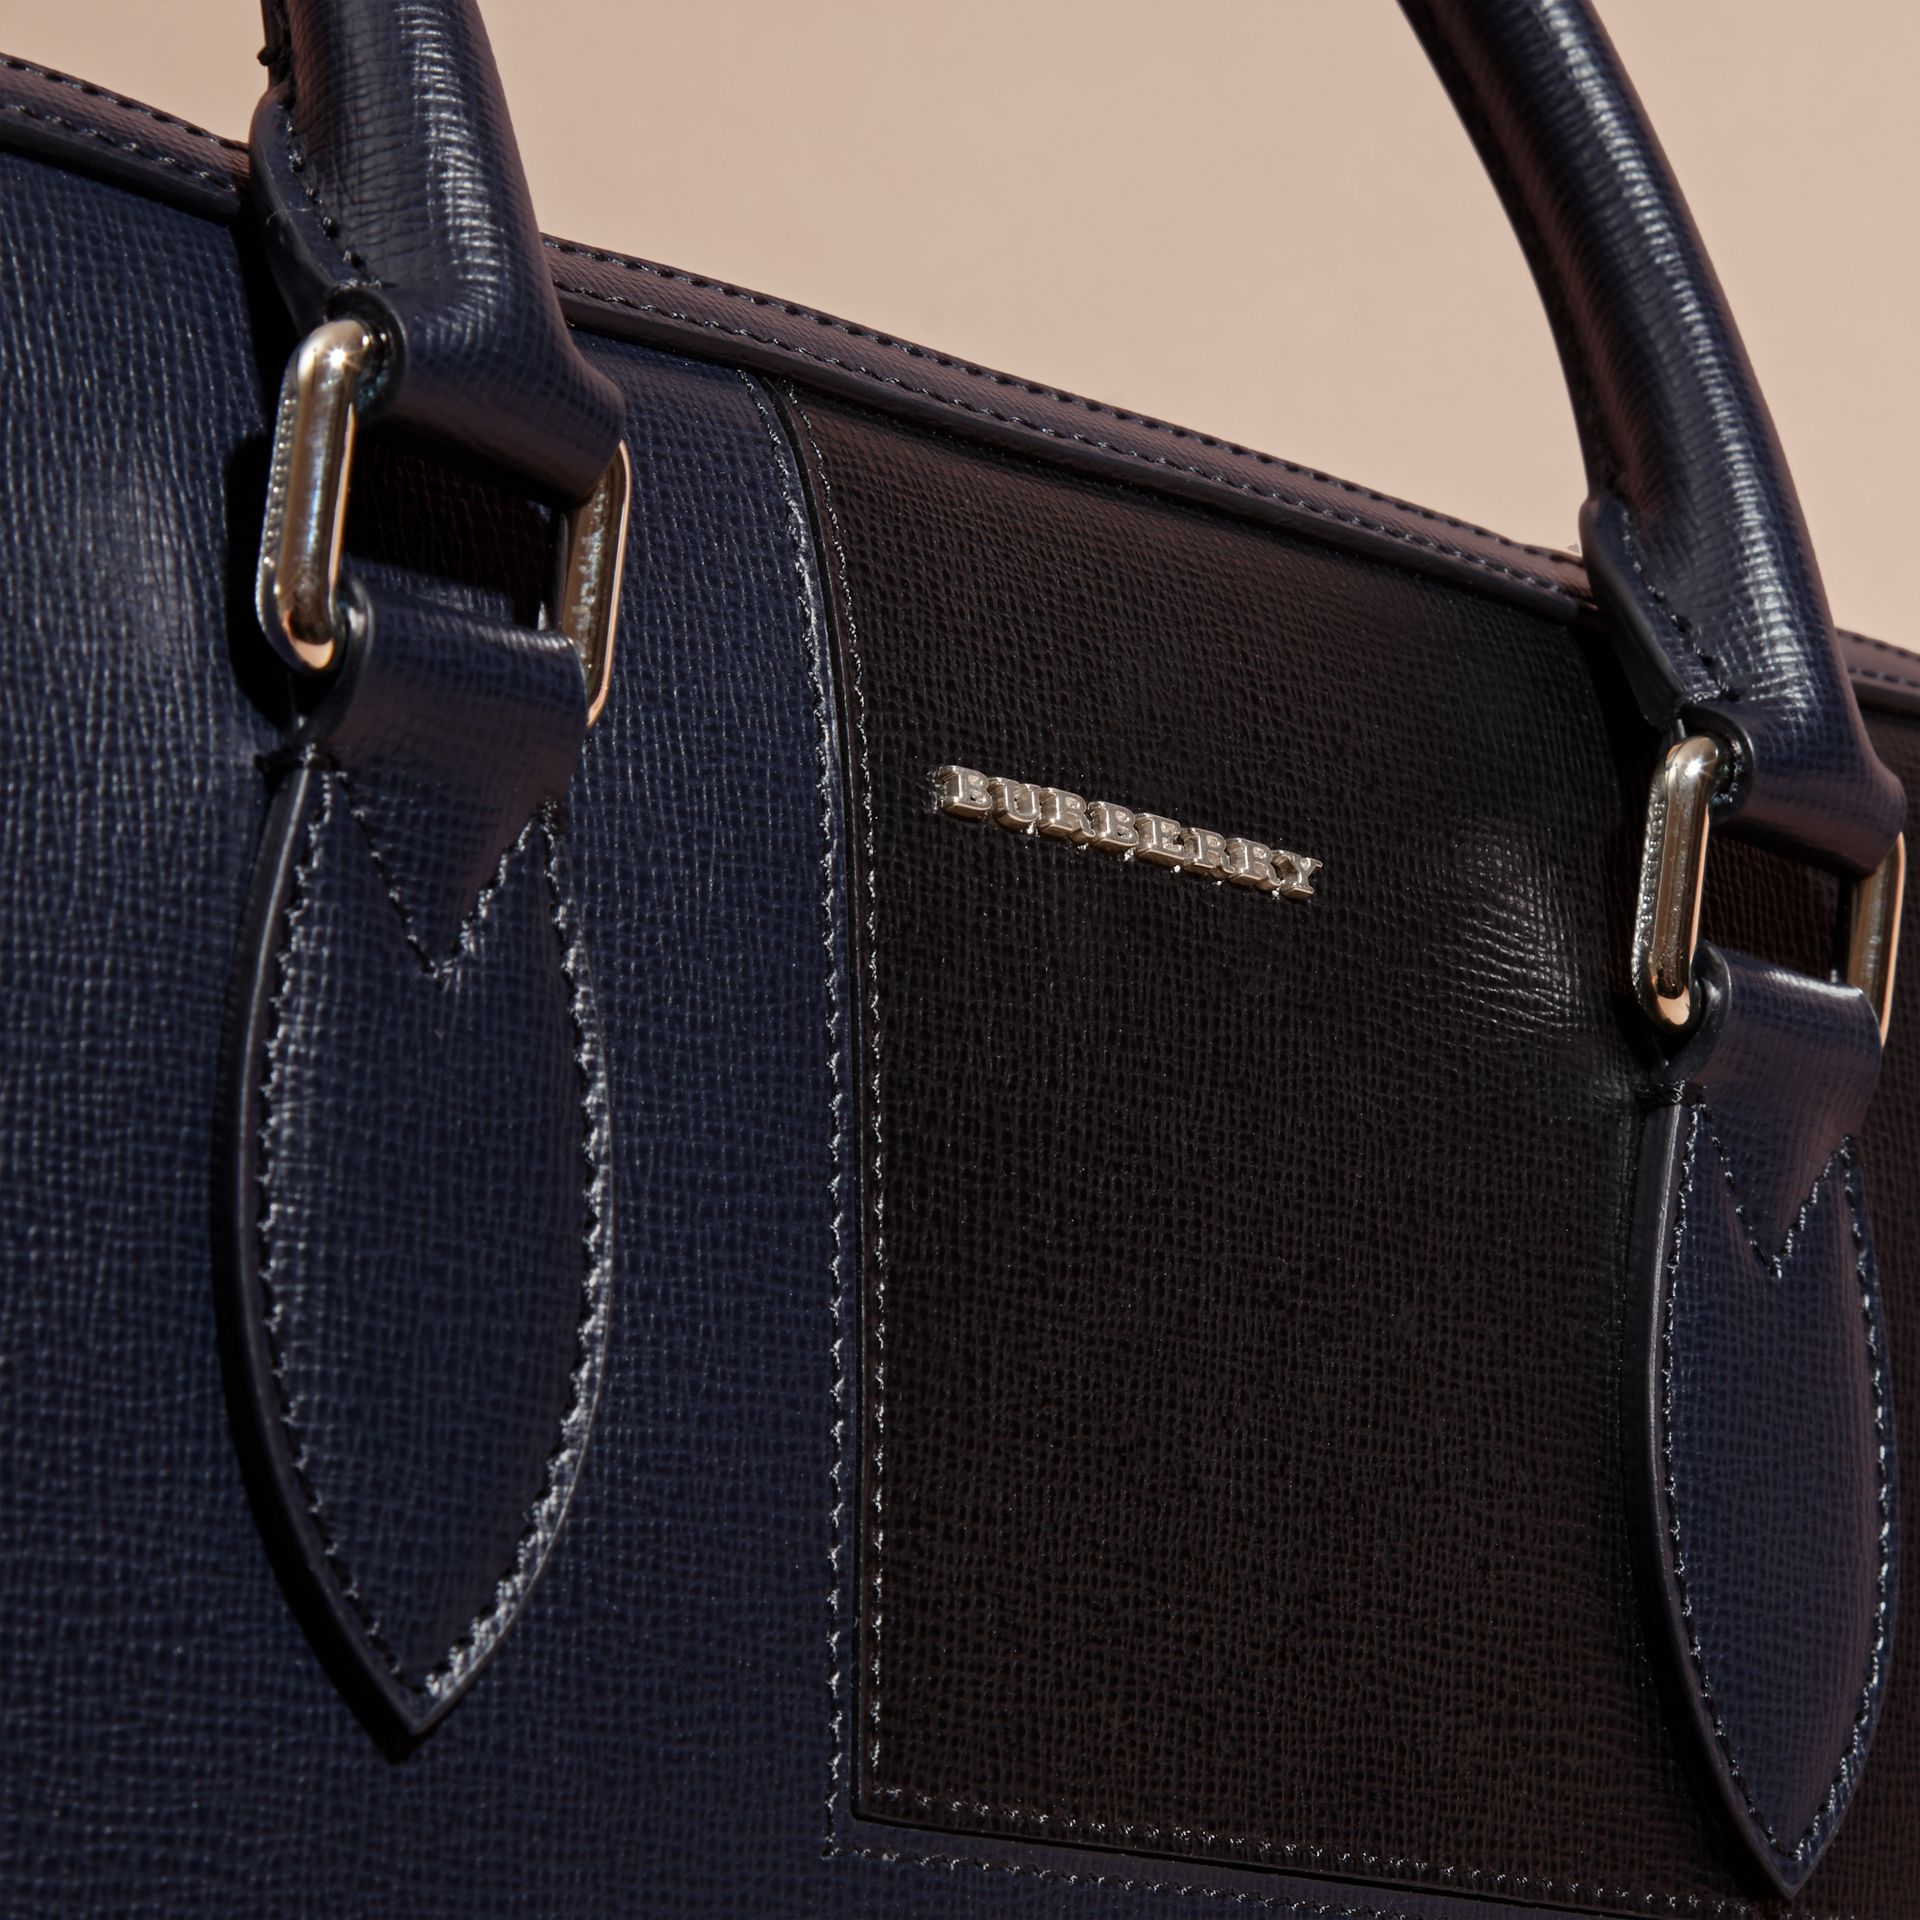 Dark navy The Slim Barrow Bag in Patchwork London Leather Dark Navy - gallery image 2